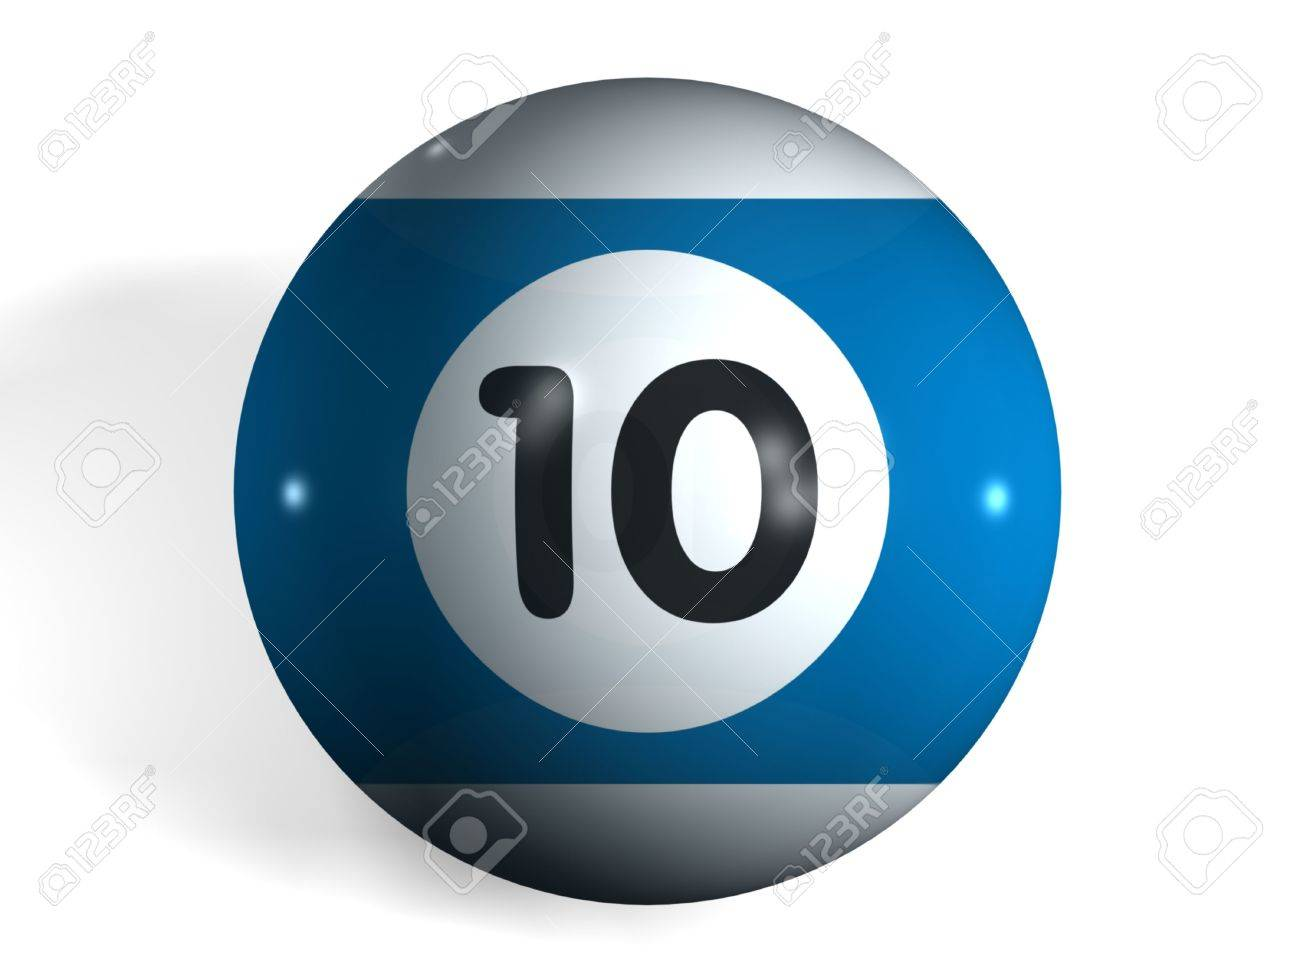 isolated 3d pool ball number 10 stock photo, picture and royalty